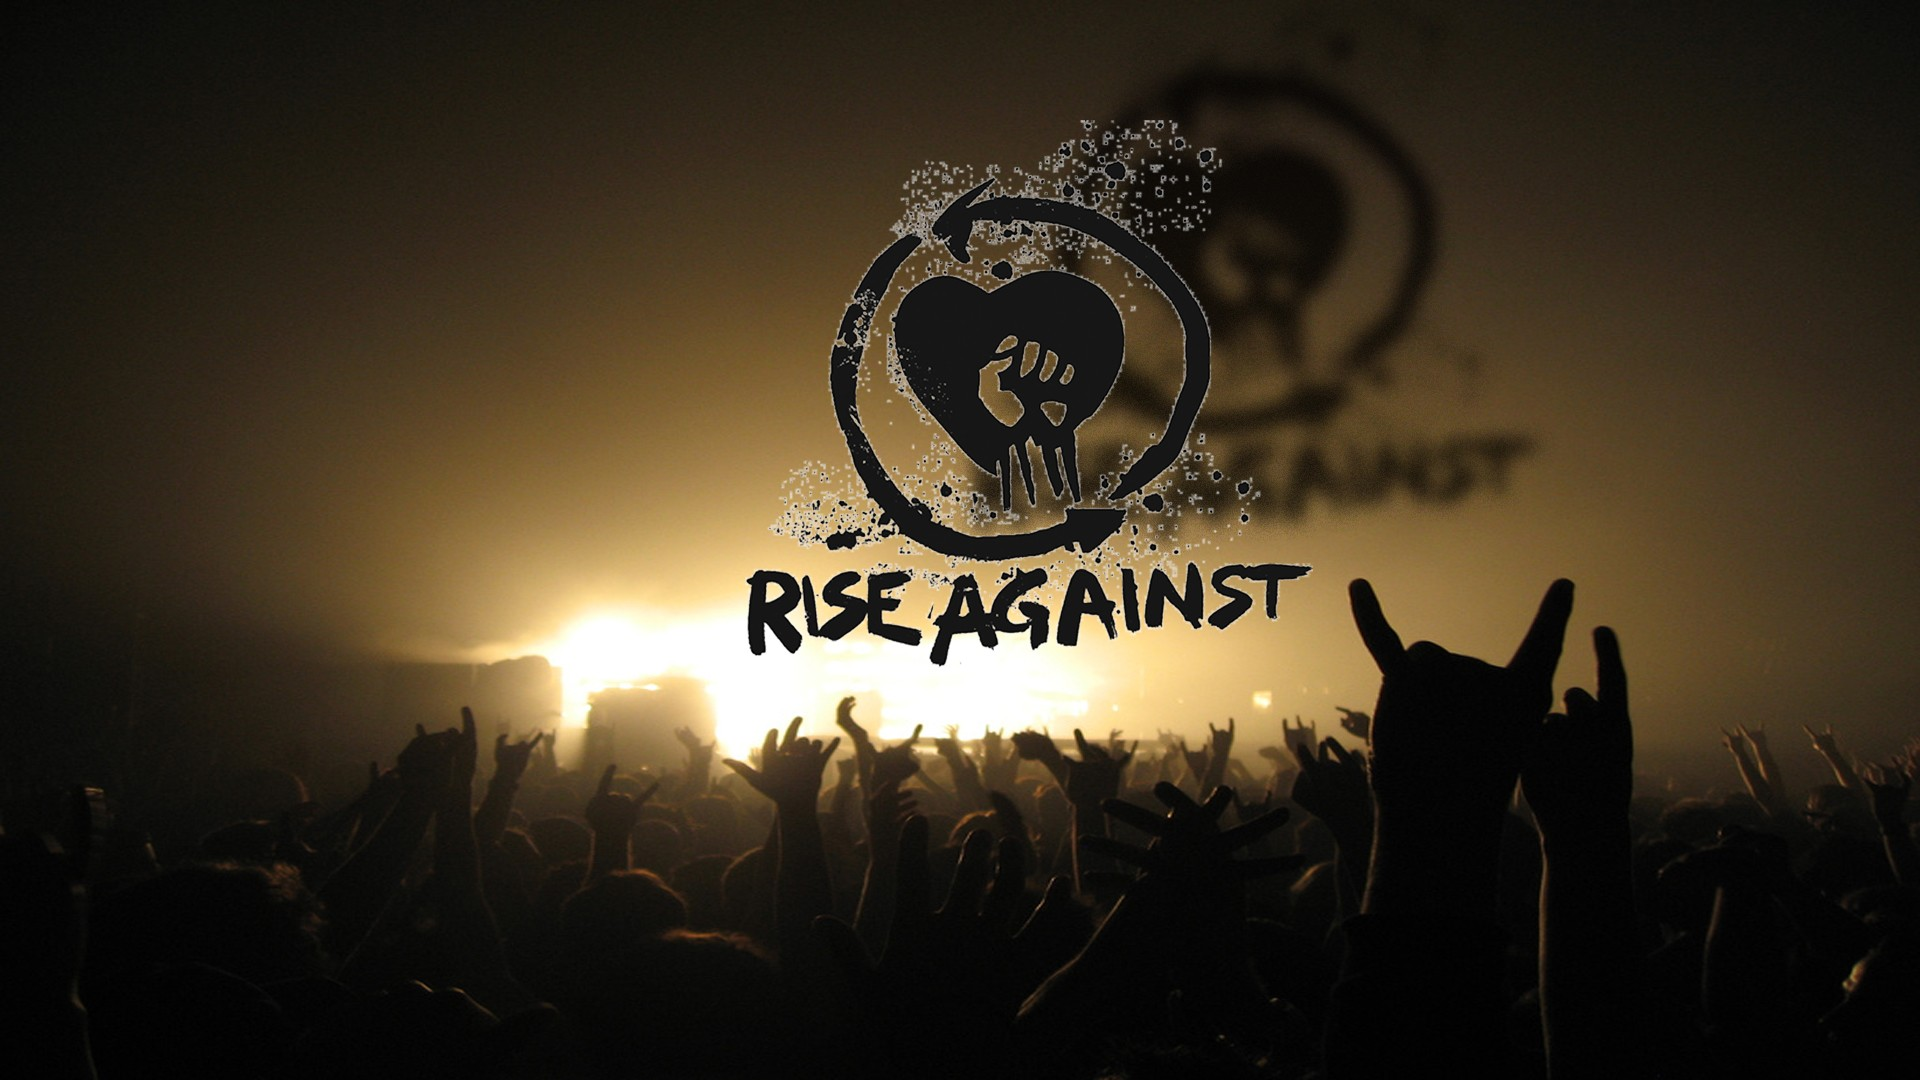 Rise Against Wallpapers, Hintergründe